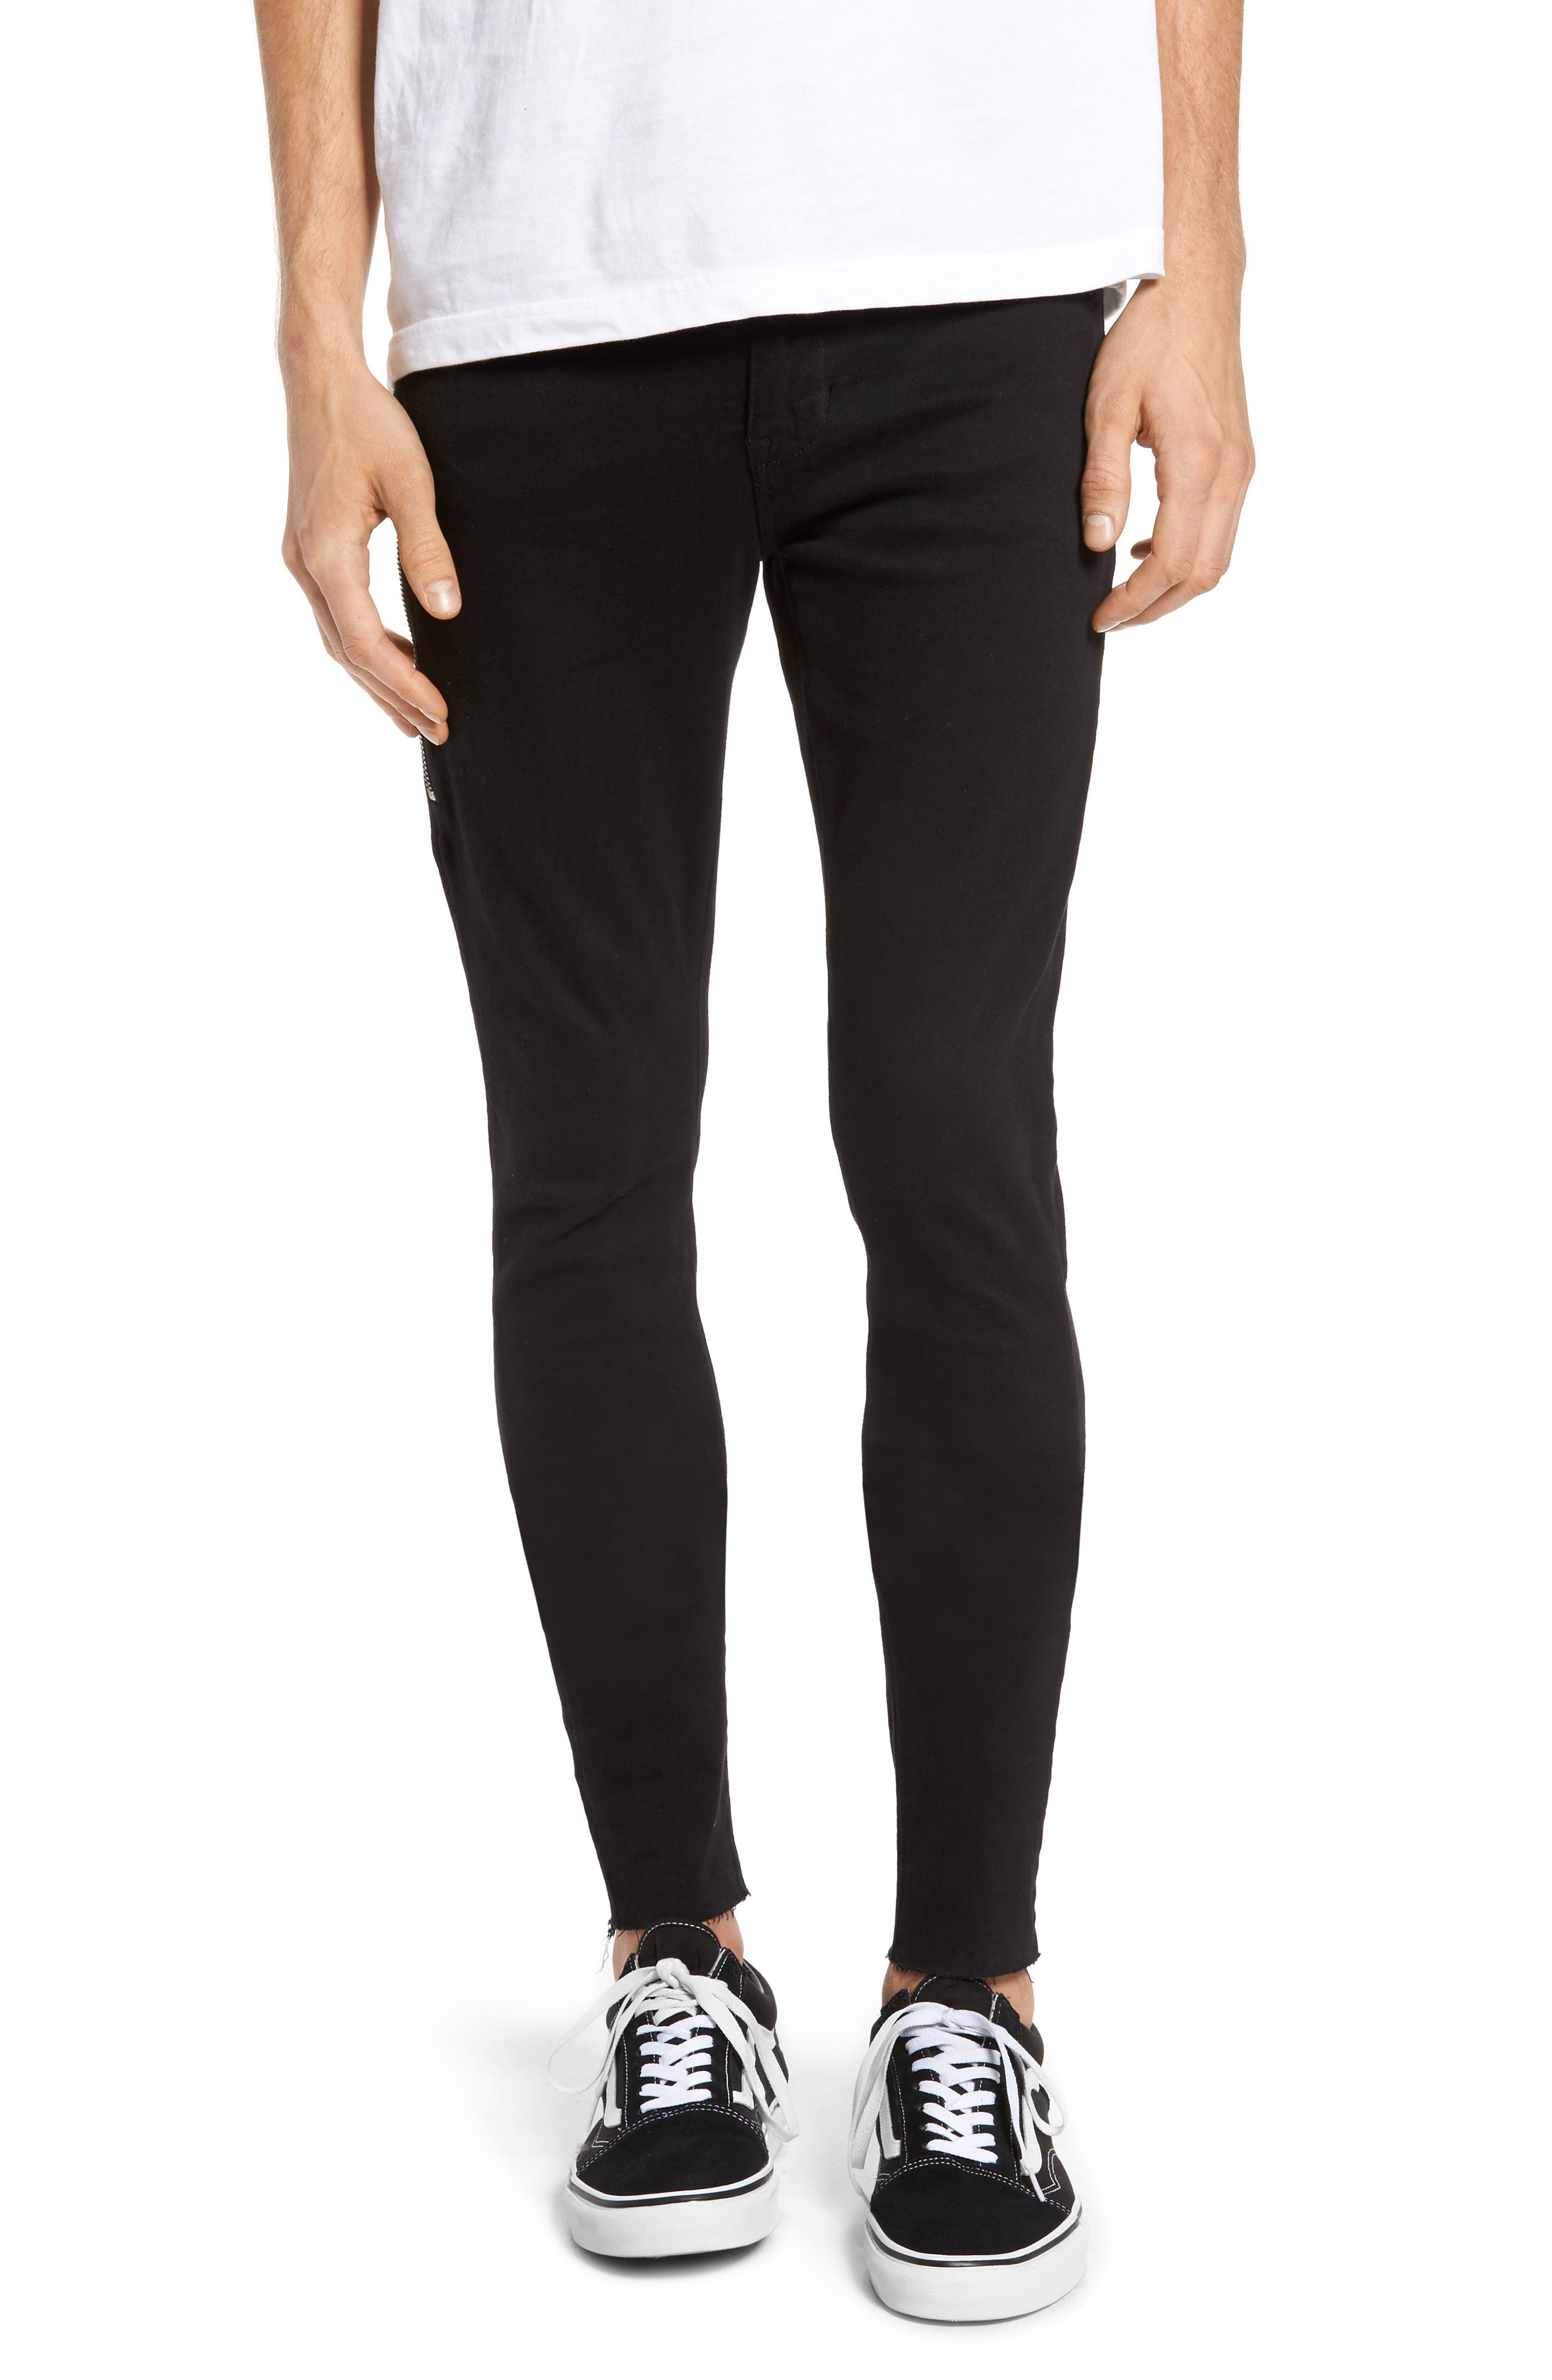 Leroy Skinny Fit Jeans,                         Main,                         color, 001